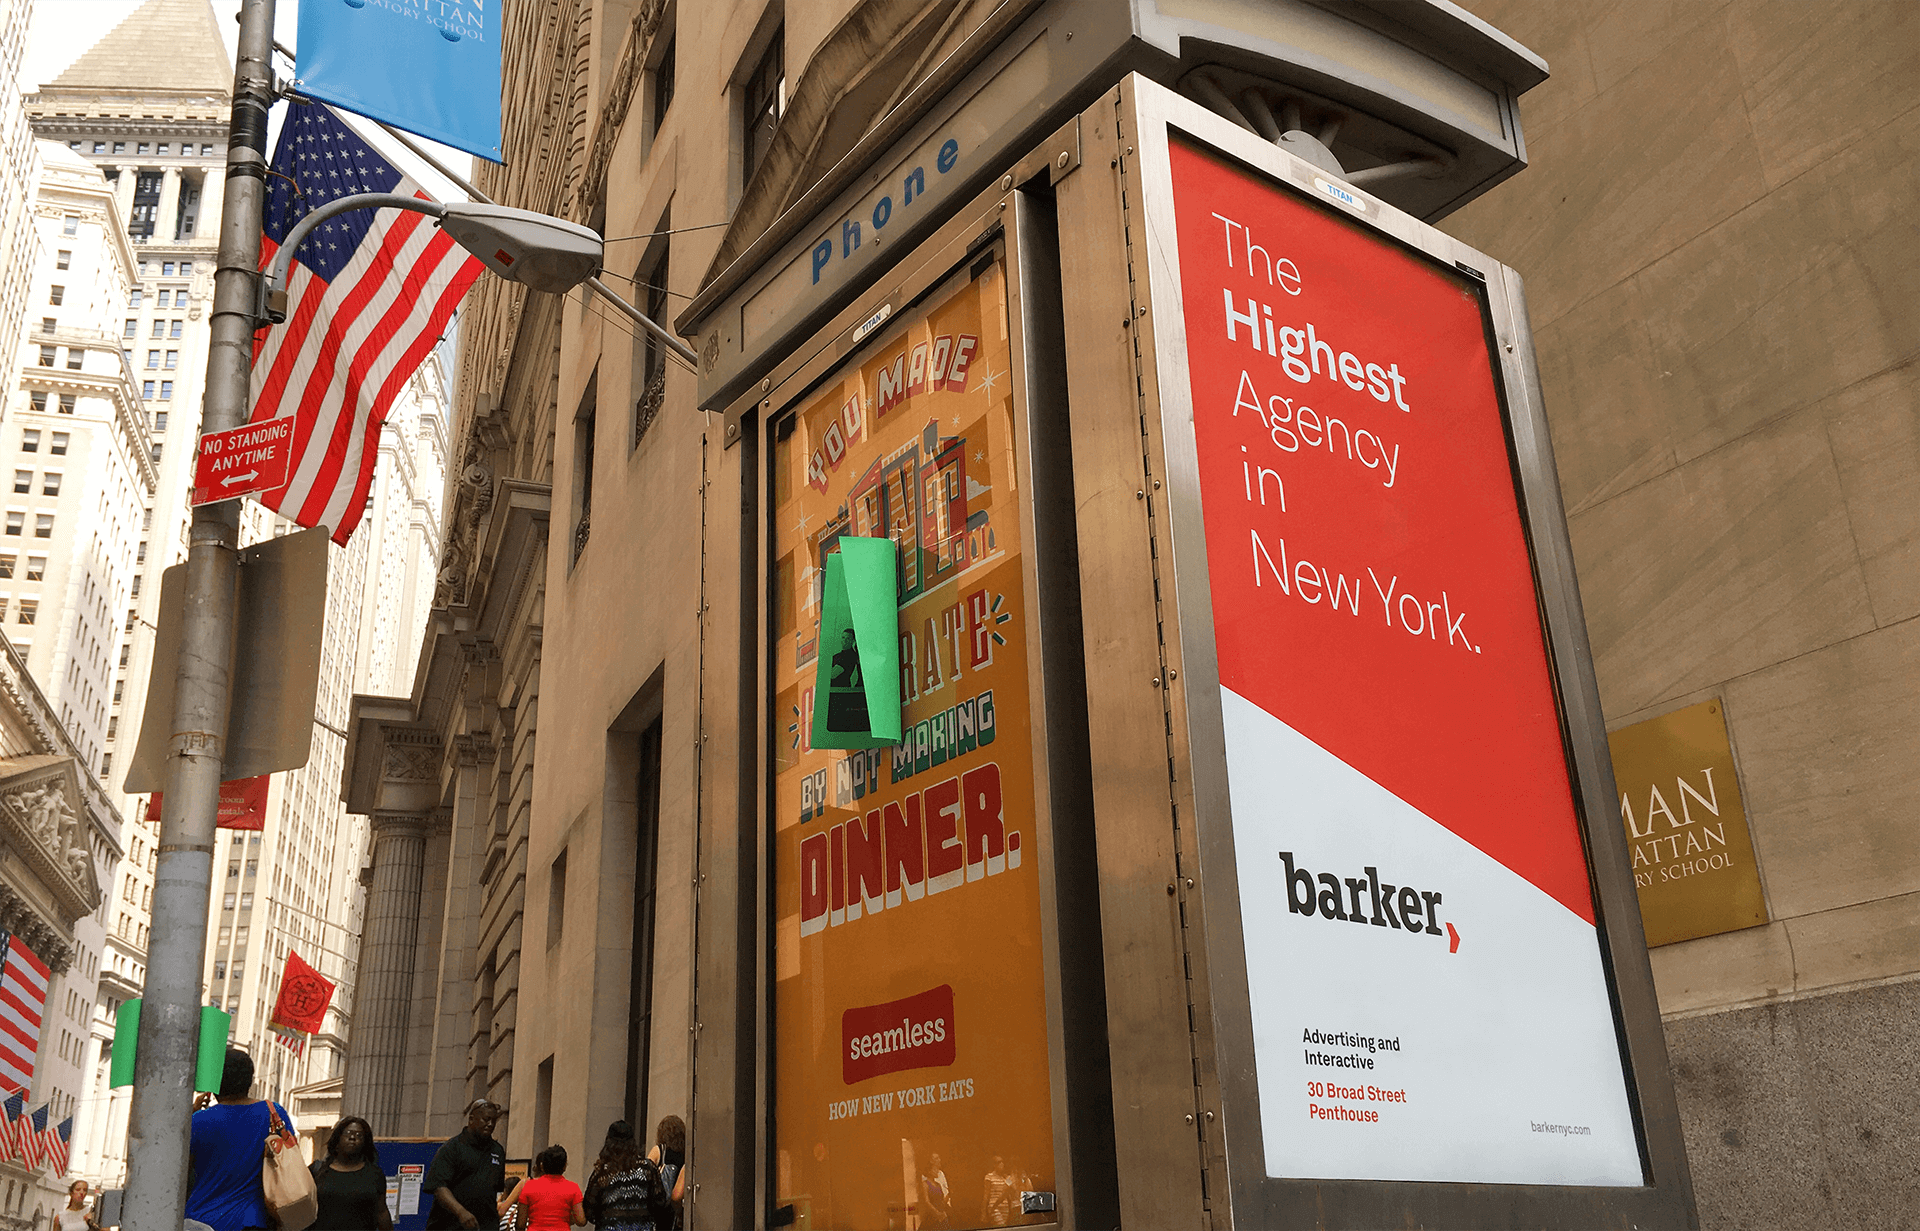 BARKER's Self-Promoting OOH Ads Attract Attention-And Thieves